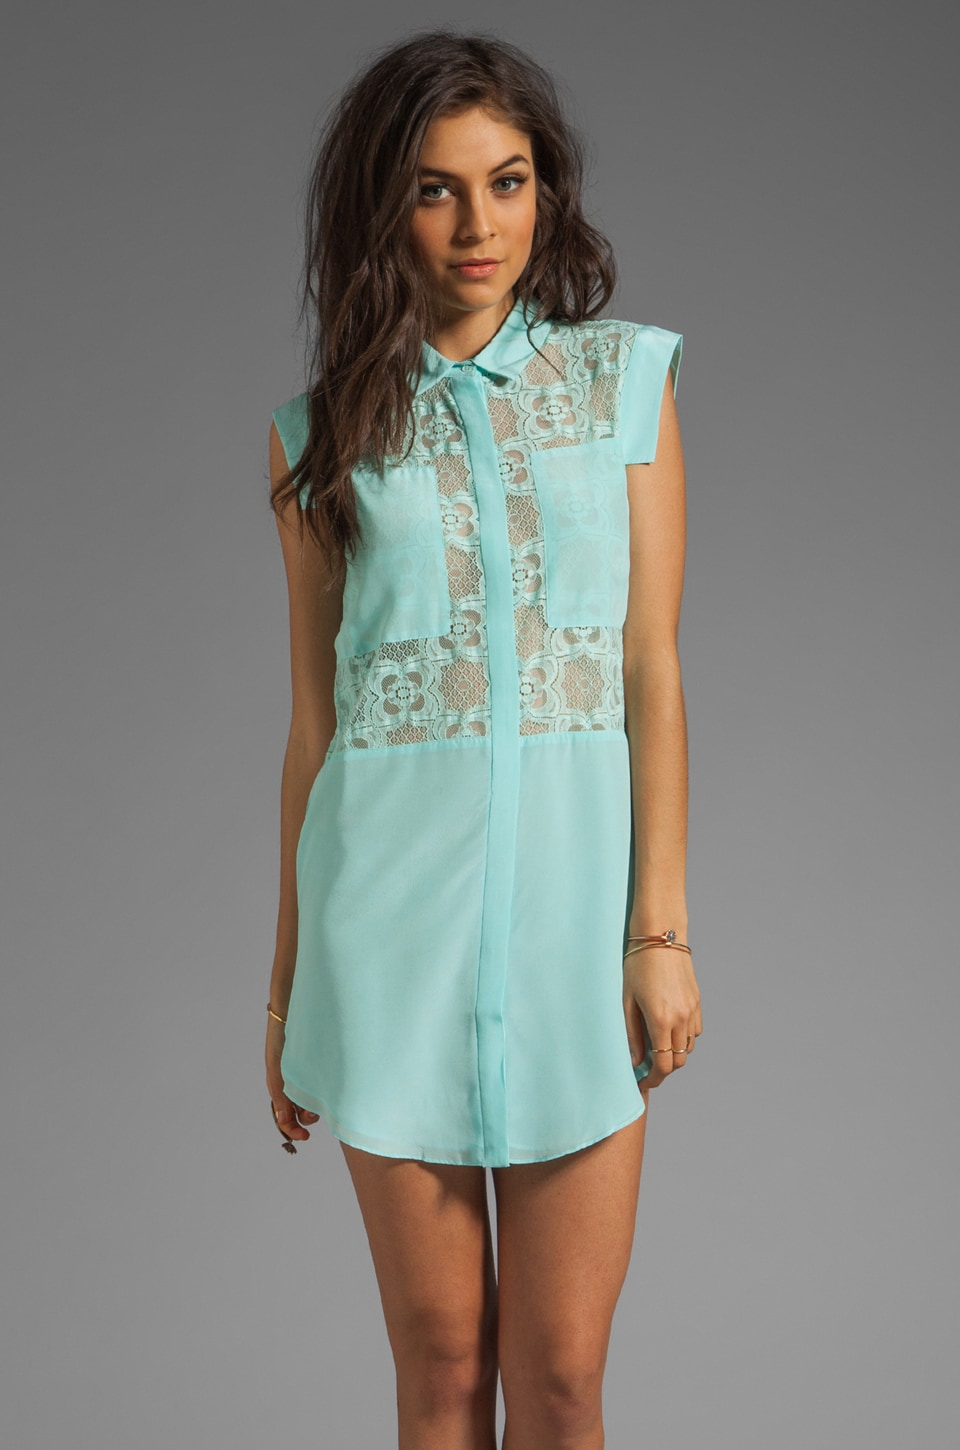 Funktional Digital Panel Dress in Digital Mint